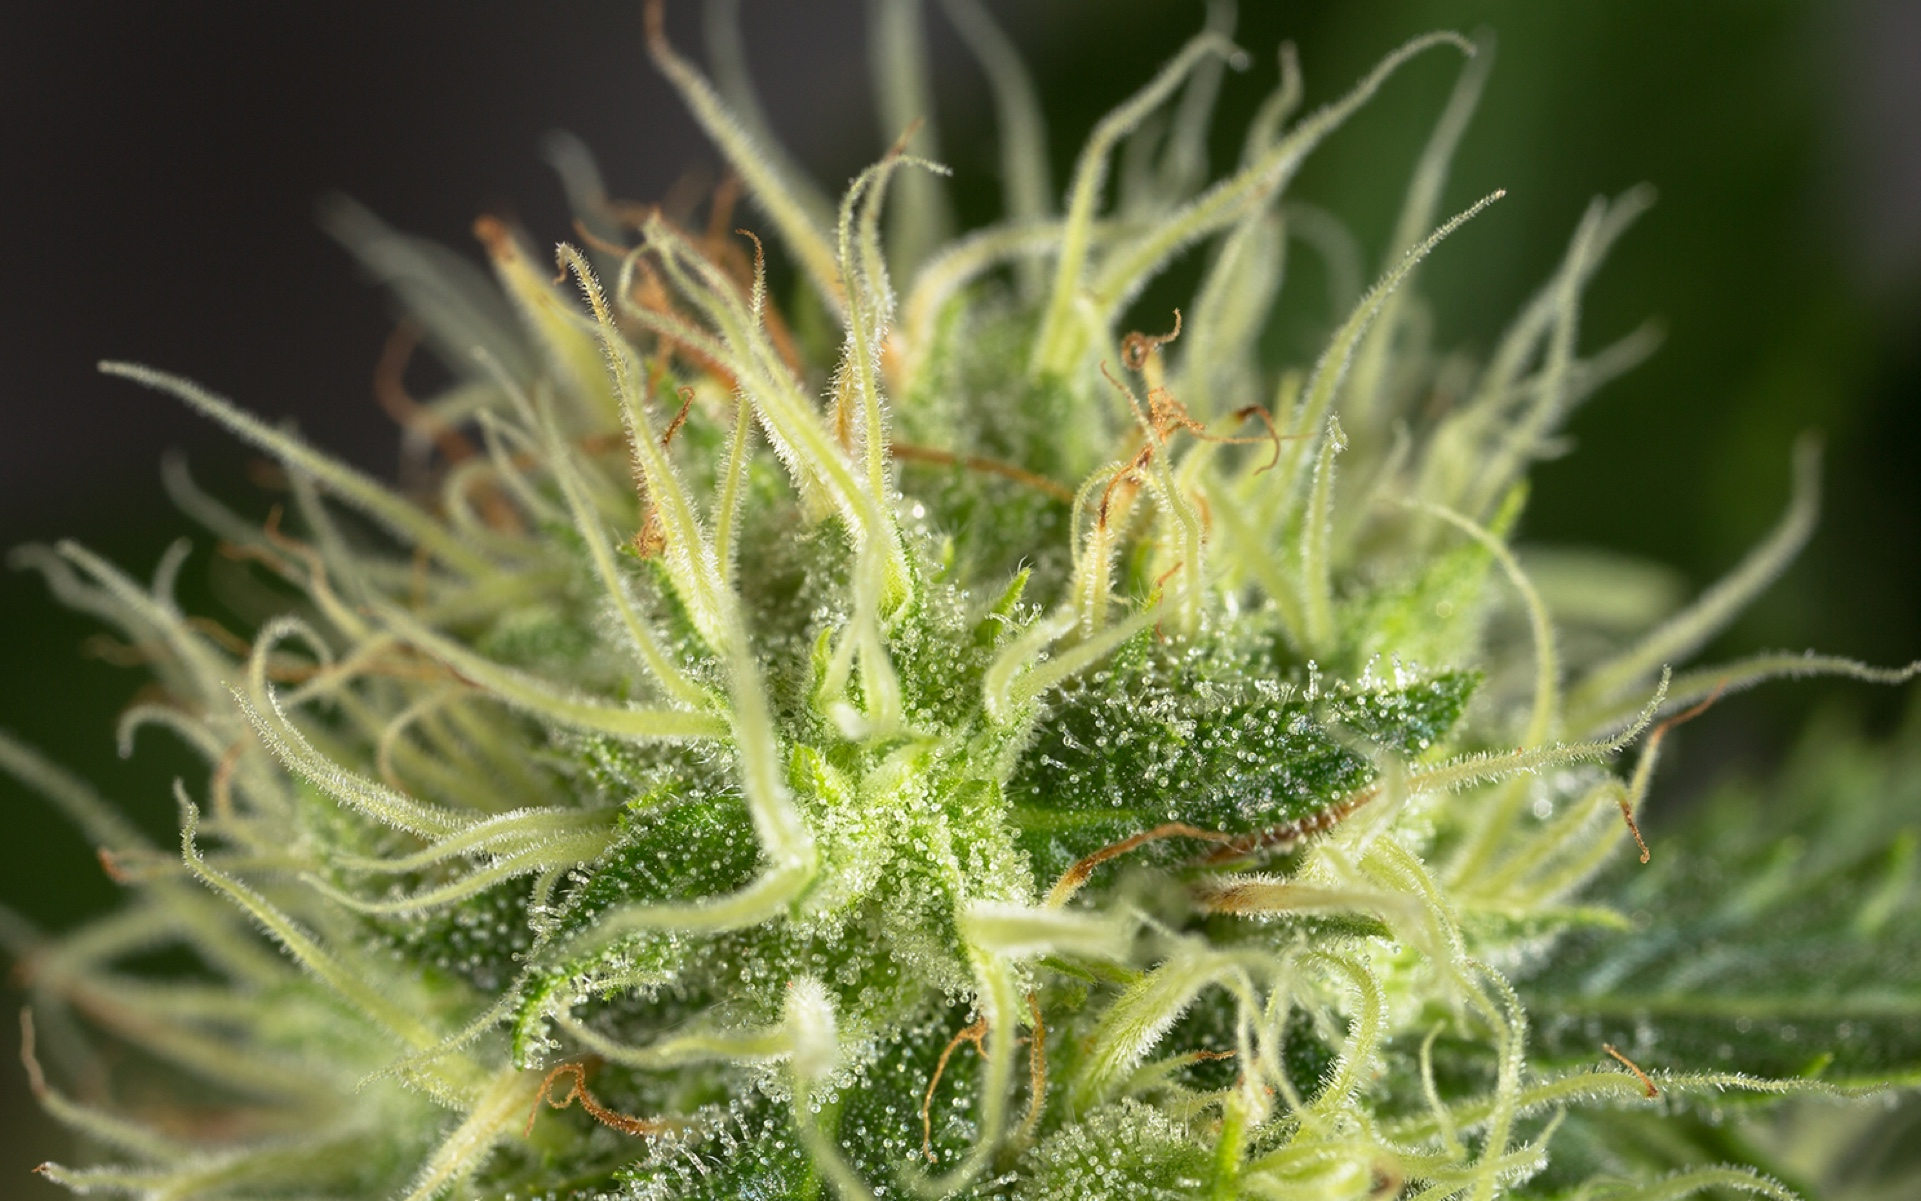 Tips for Growing OG Kush Cannabis | Leafly